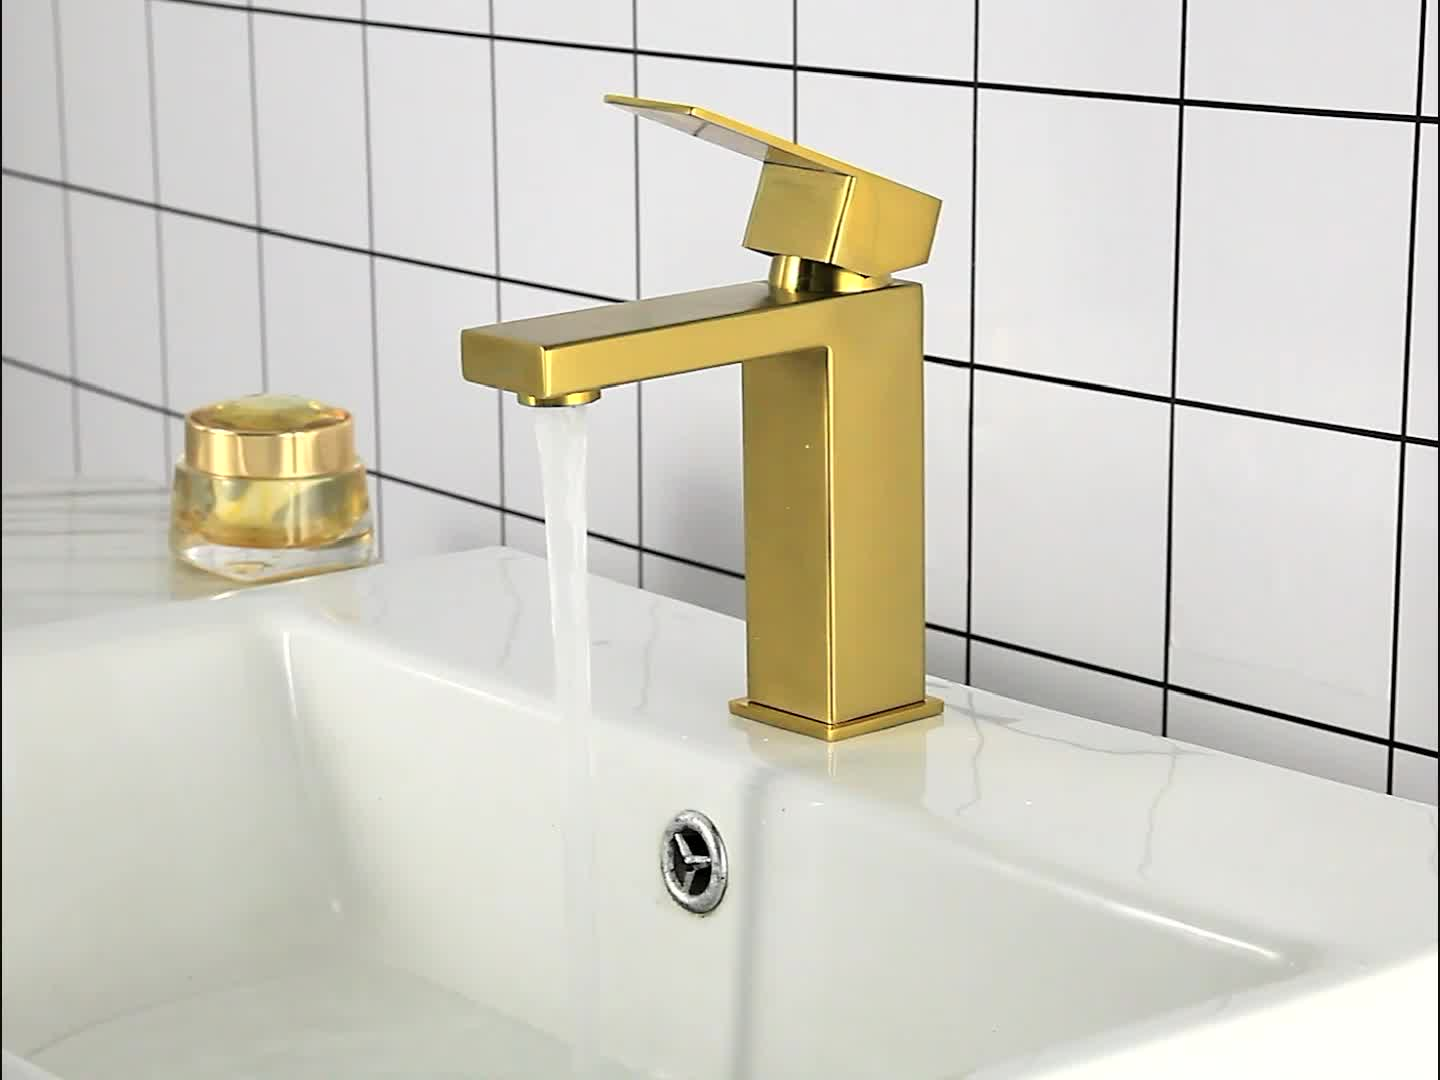 304 stainless steel square brushed gold black faucet - Stainless steel bathroom fixtures ...